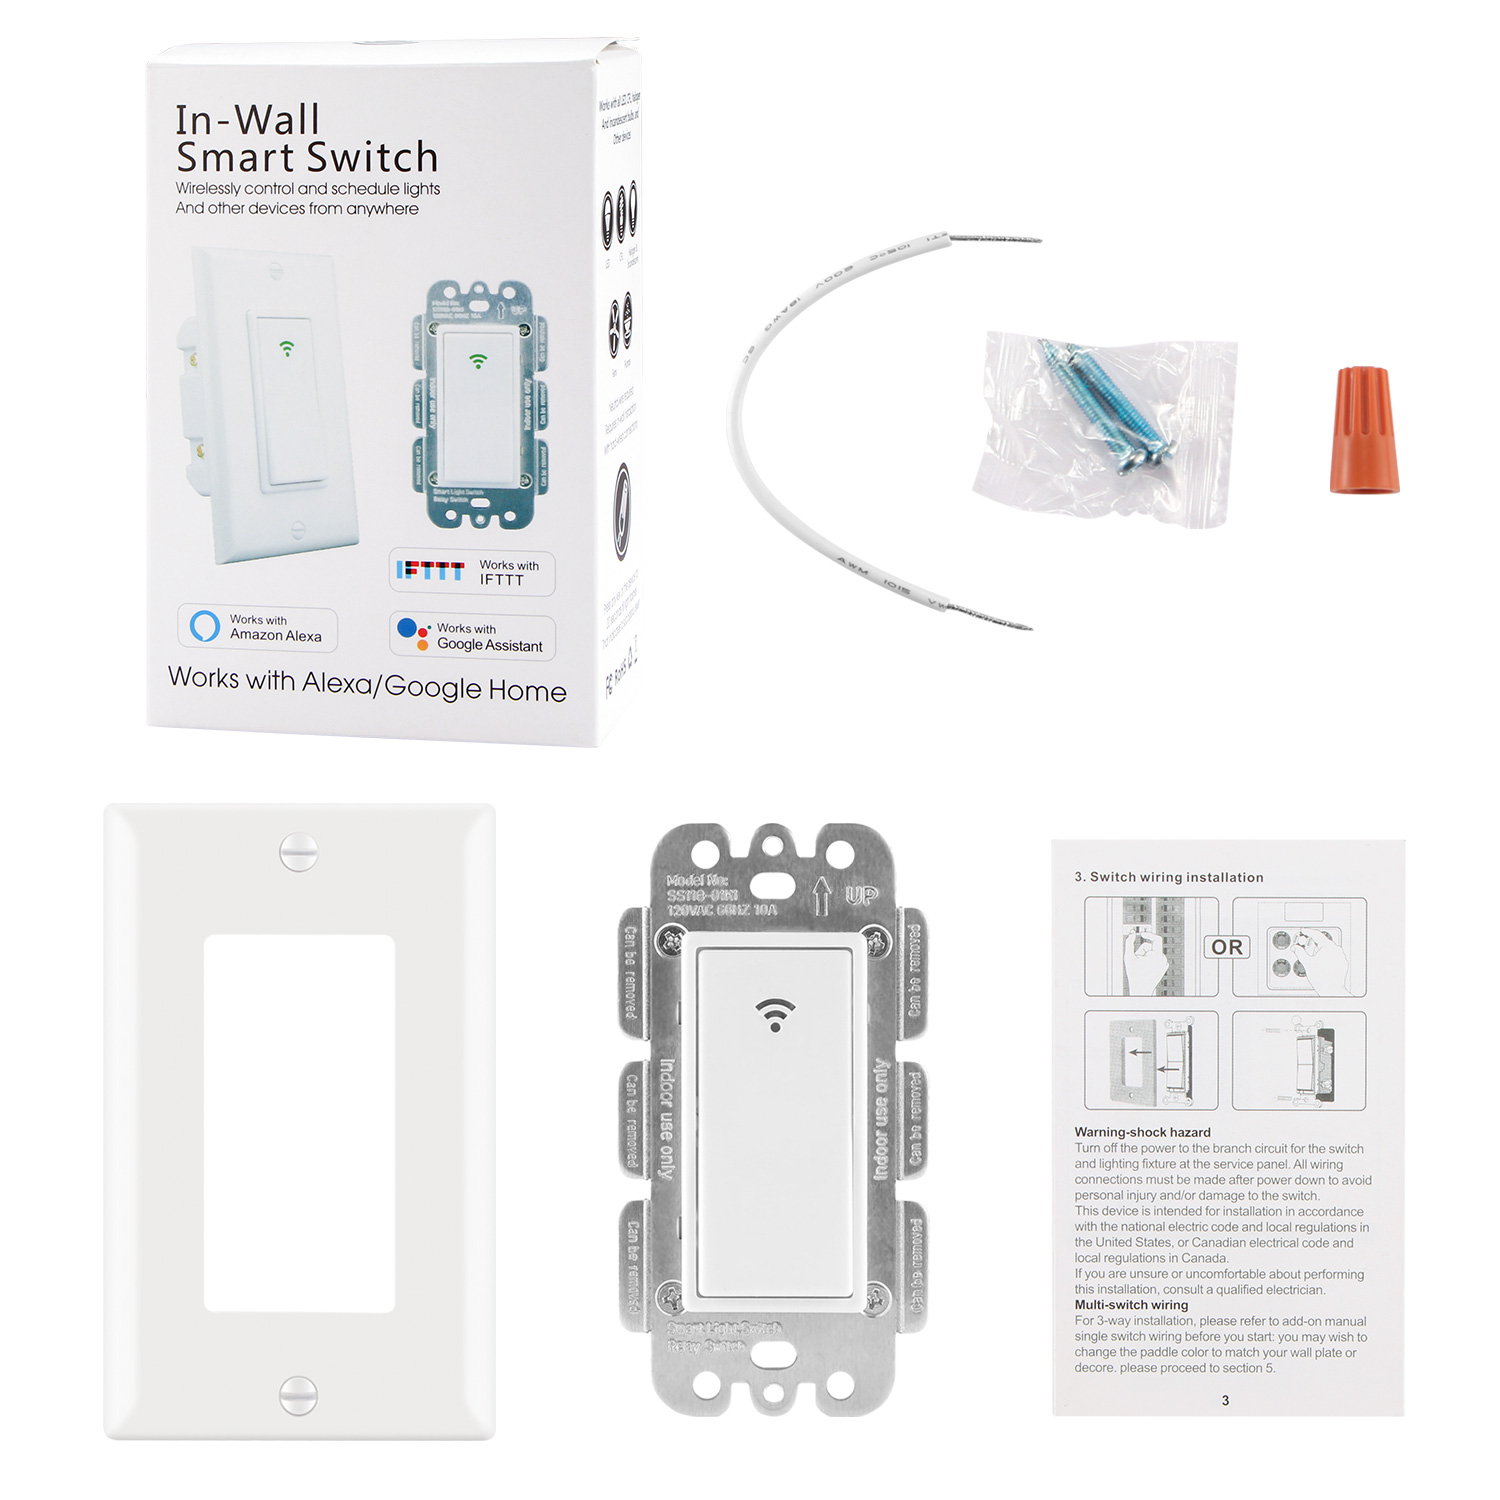 Smart Wifi Switch Us Plug 2000w Wall In Phone Remote Wiring 1smart Light 2long Screw 2short 1 Twisted Wire Cap 1standby Line 1package Box